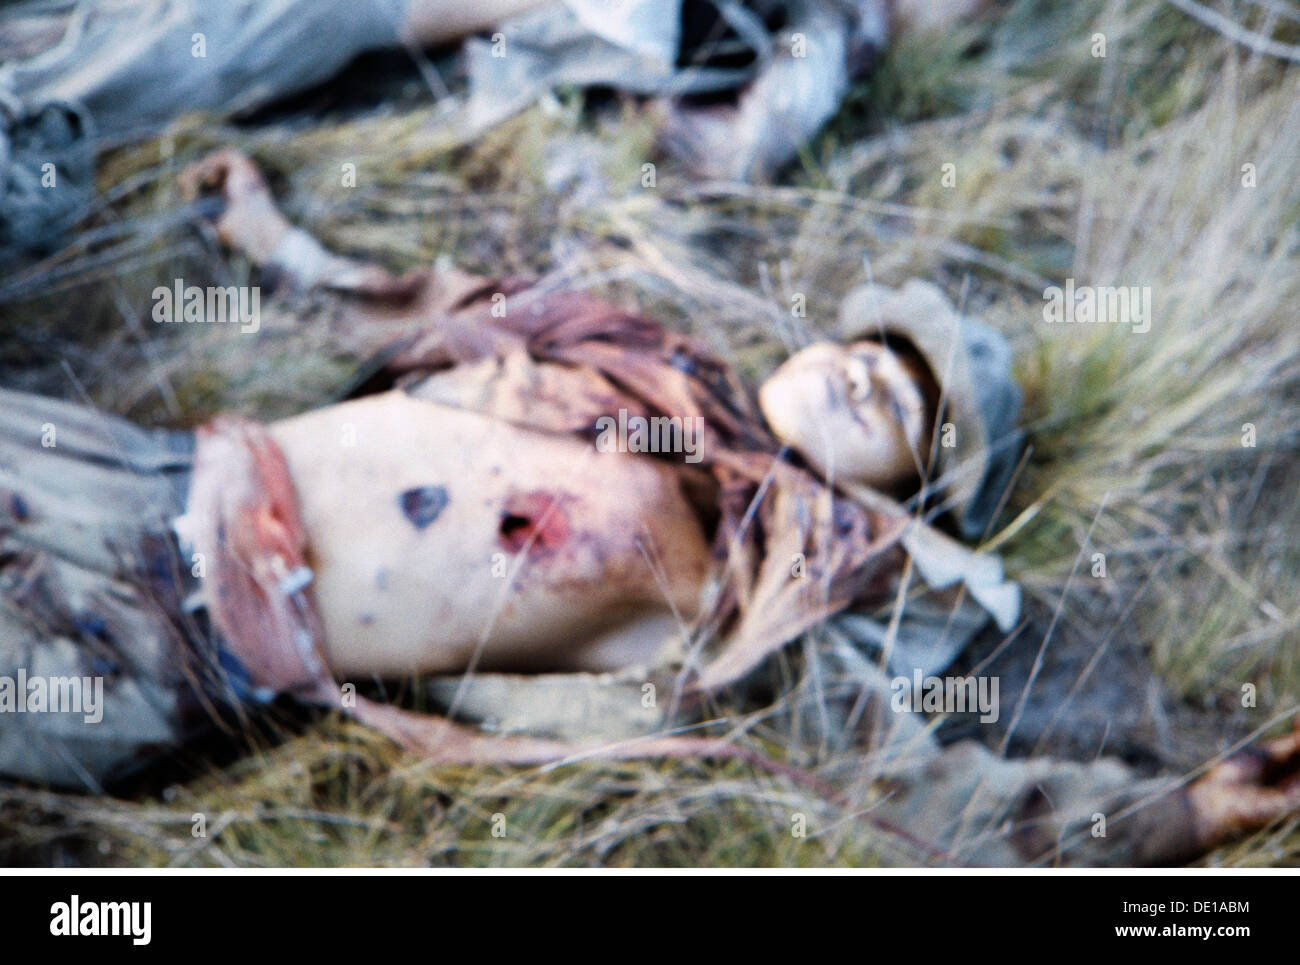 Vietnam War 1957 - 1975, killed Vietnamese fighter, South Vietnam, 1965, communist, communists, dead body, dead bodies, corpse, corpses, death, dead, kill, killing, South-East Asia, South East Asia, Southeast Asia, Far East, Viet Nam conflict, Viet Nam, Vietnam, war, wars, conflict, conflicts, 1960s, 60s, 20th century, people, man, men, male, historic, historical, Additional-Rights-Clearences-NA - Stock Image